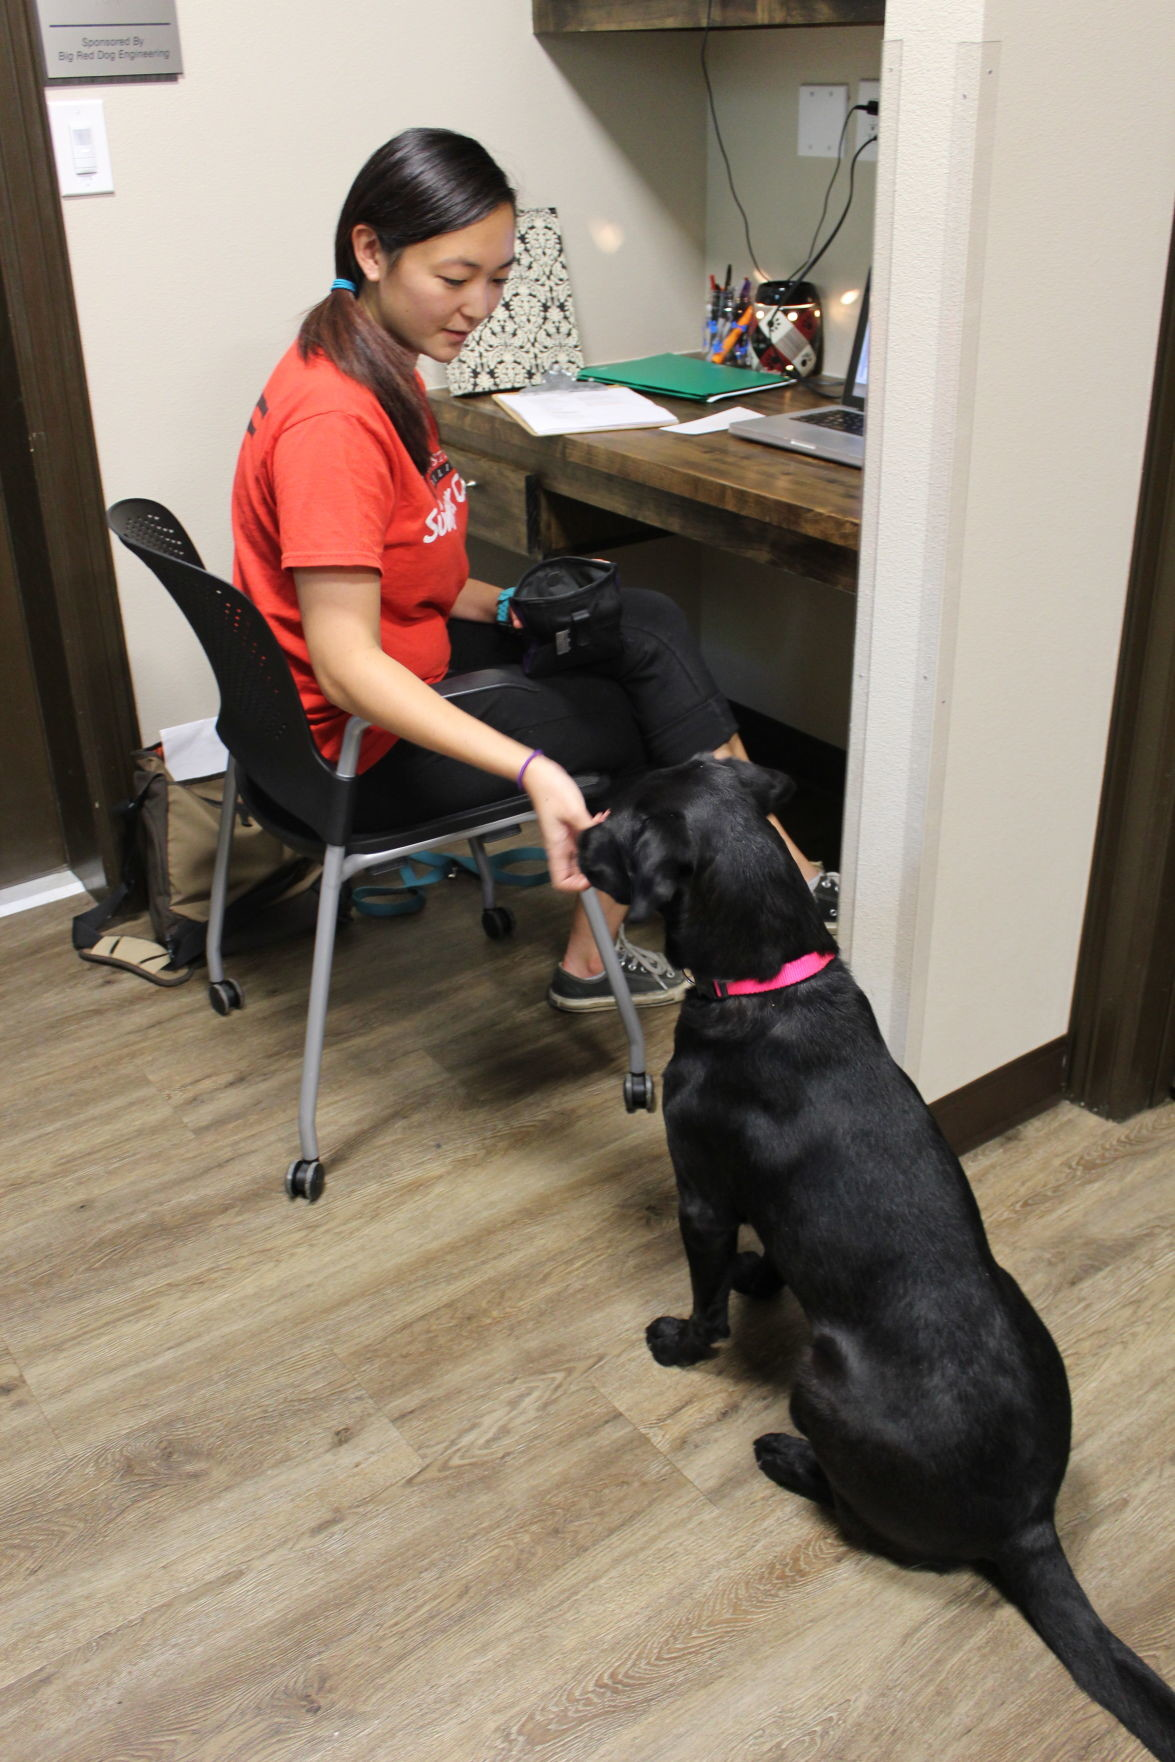 Danielle Calkins trains Dixie for service dog work, so Dixie will behave calmly and quietly underneath desks and tables for their owner.